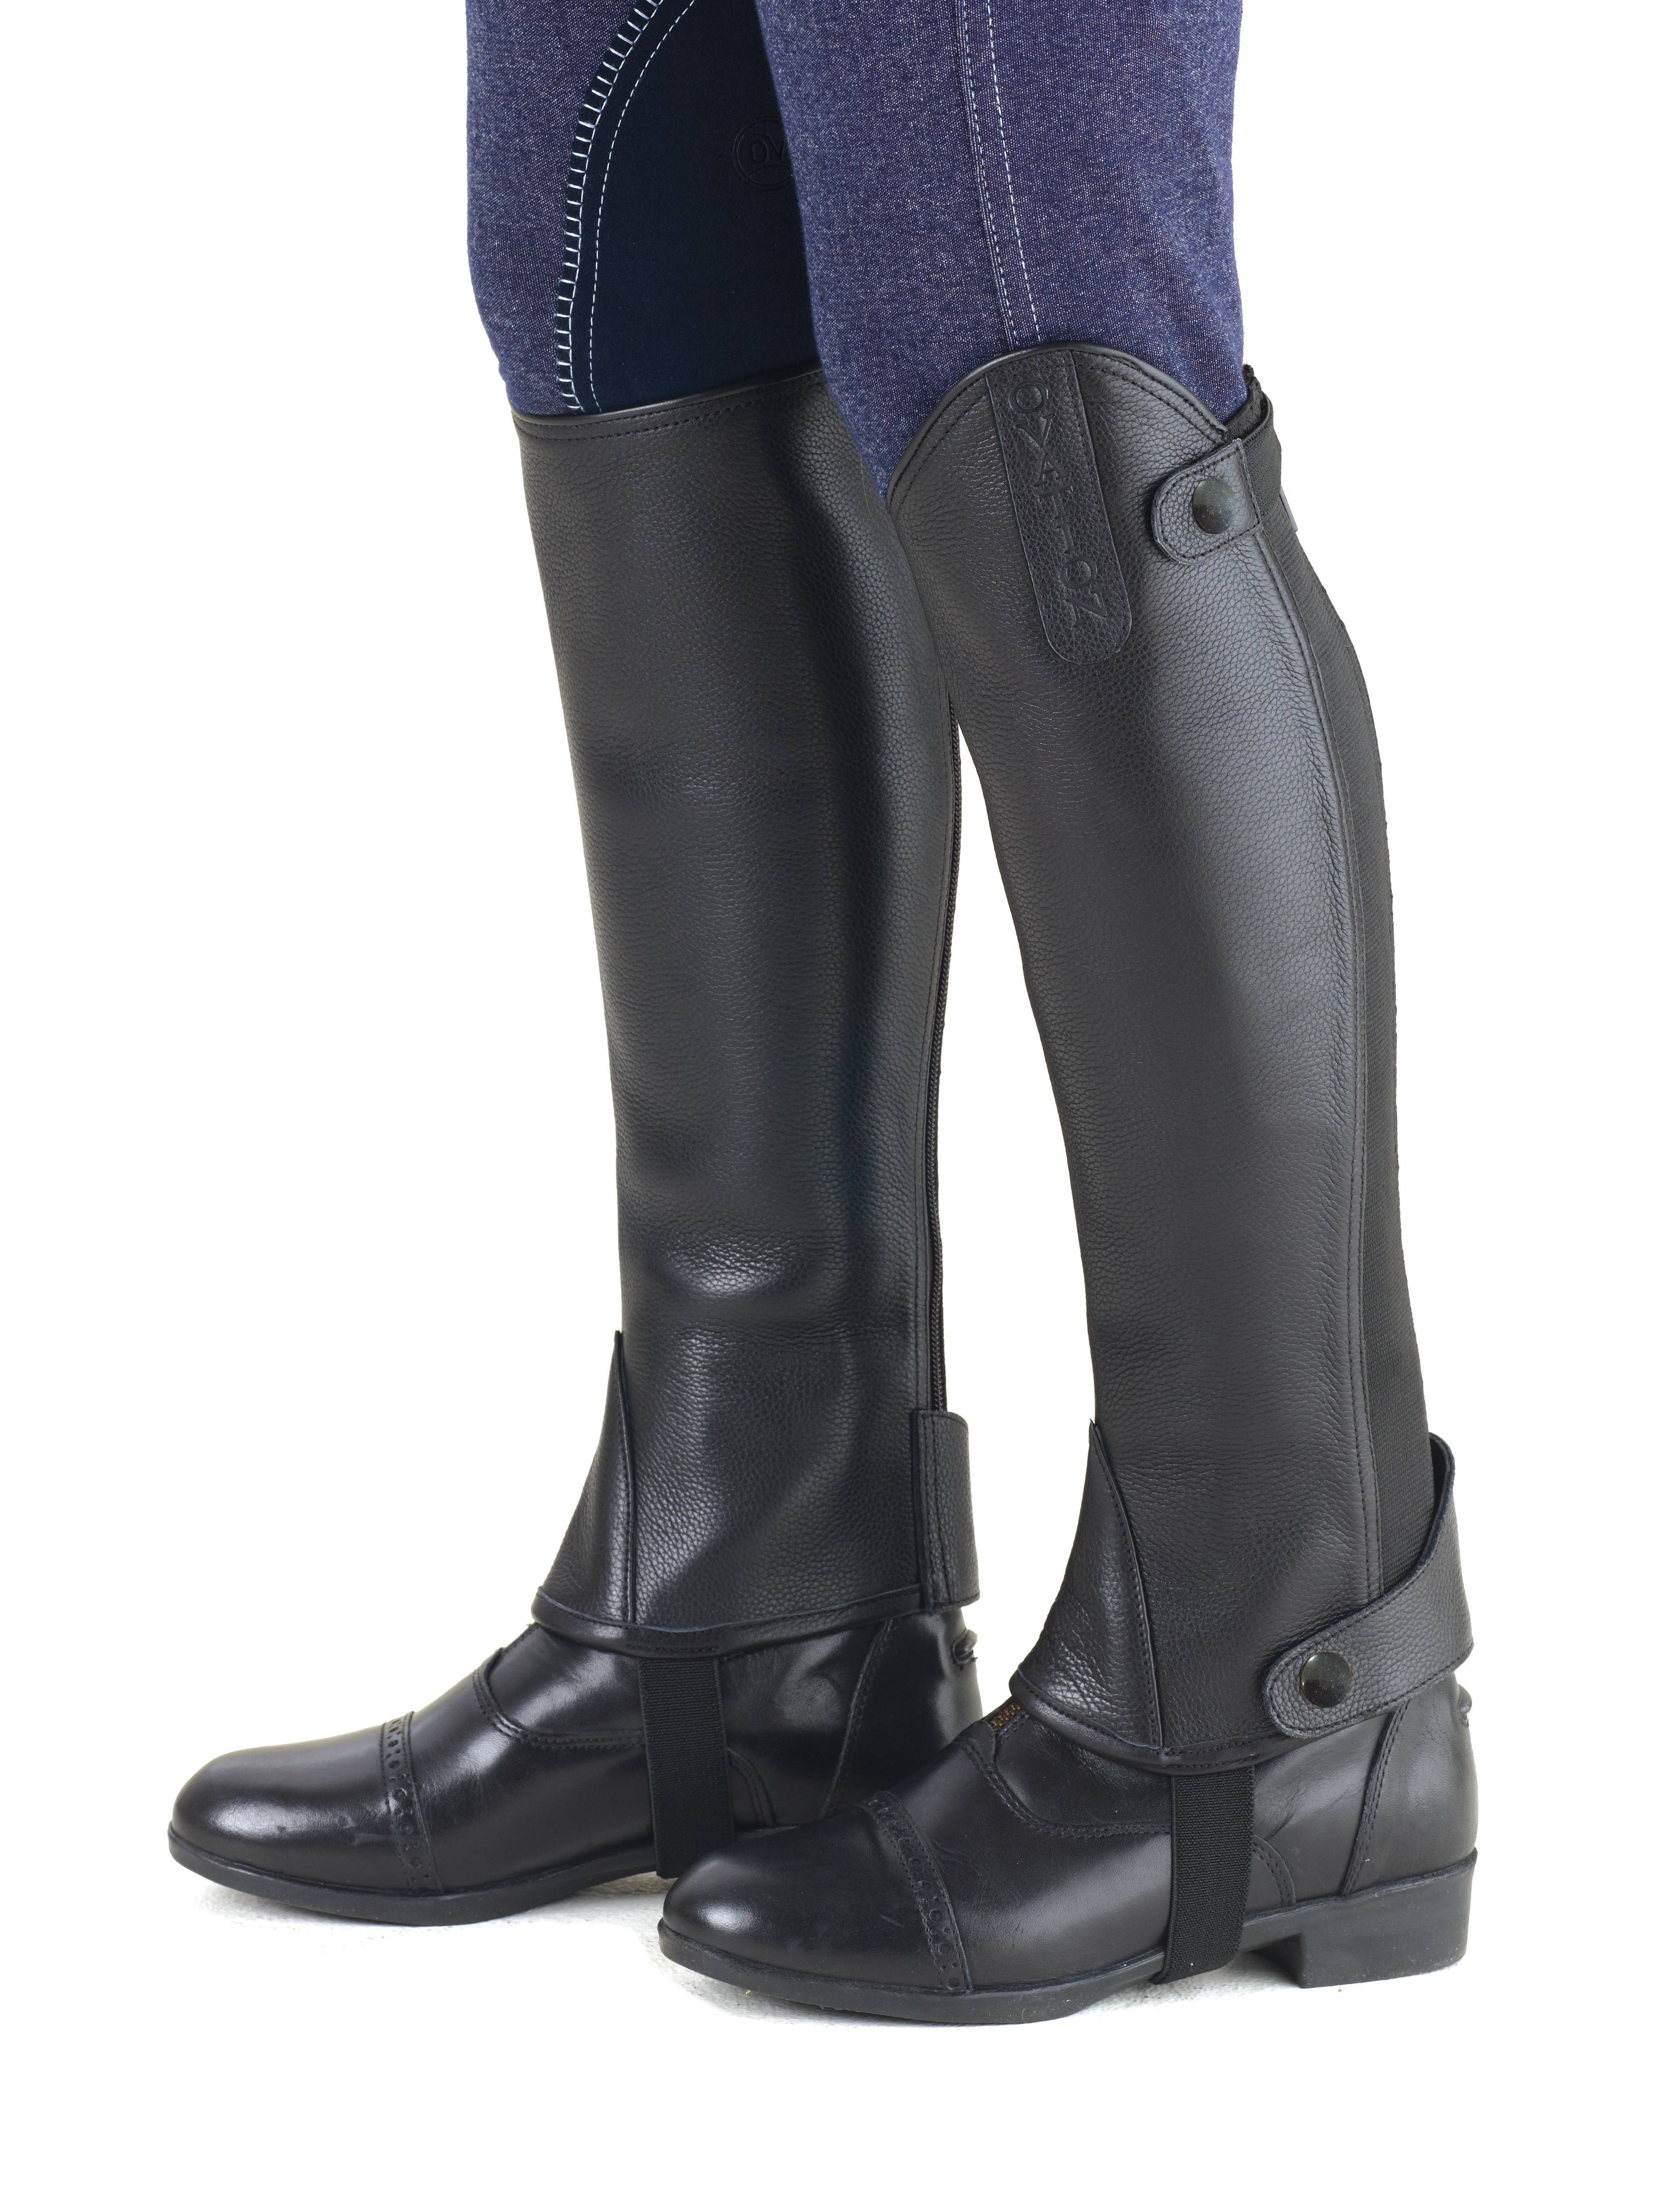 Ovation Turin Giana Half Chaps- Ladies